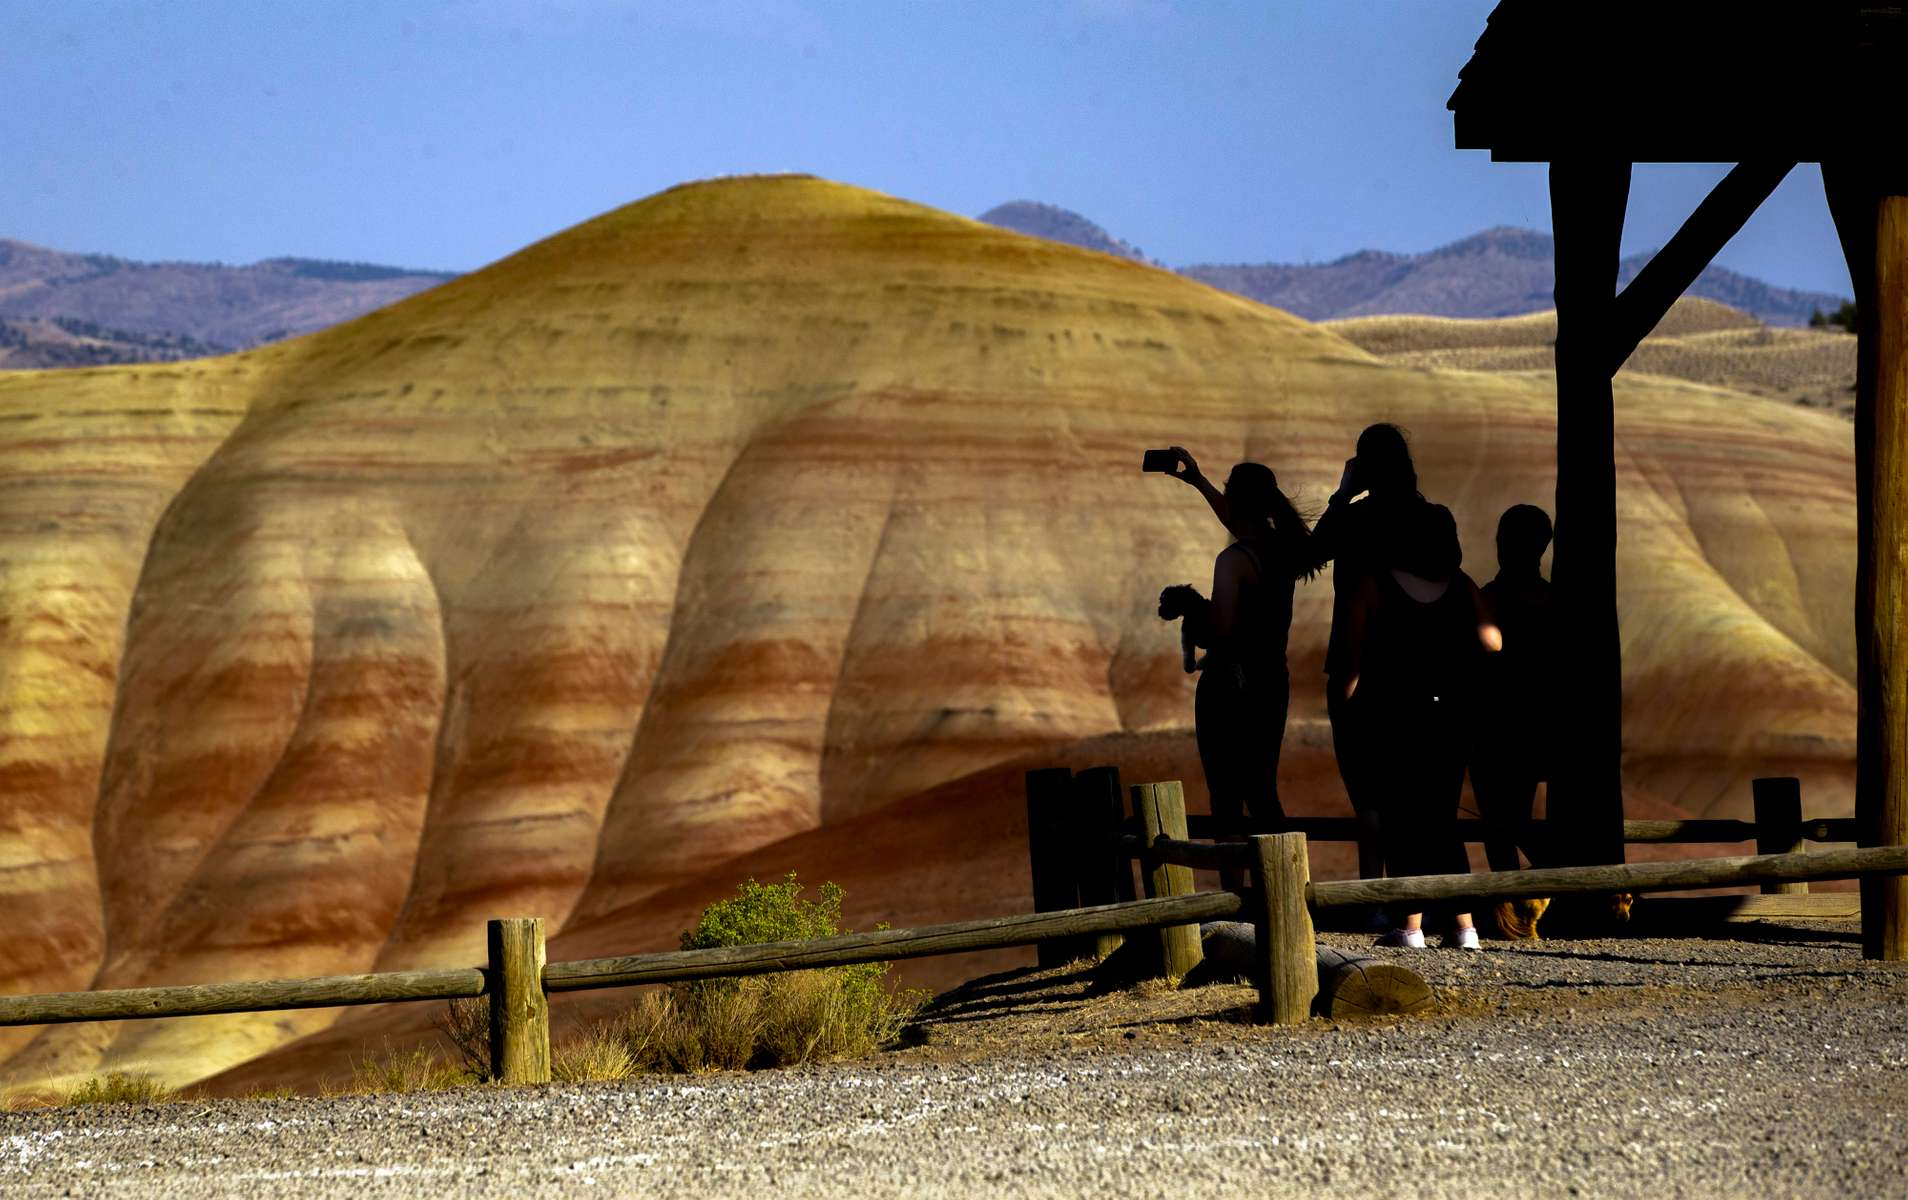 Tourists visit the Painted Hills in the John Day Fossi Beds National Monument Sept. 4, 2020, near Mitchell, Oregon. The monument attracts about 200,000 visitors a year with the Painted Hills being a top attraction after being named one of Travel Oregon's Seven Wonders of the state.